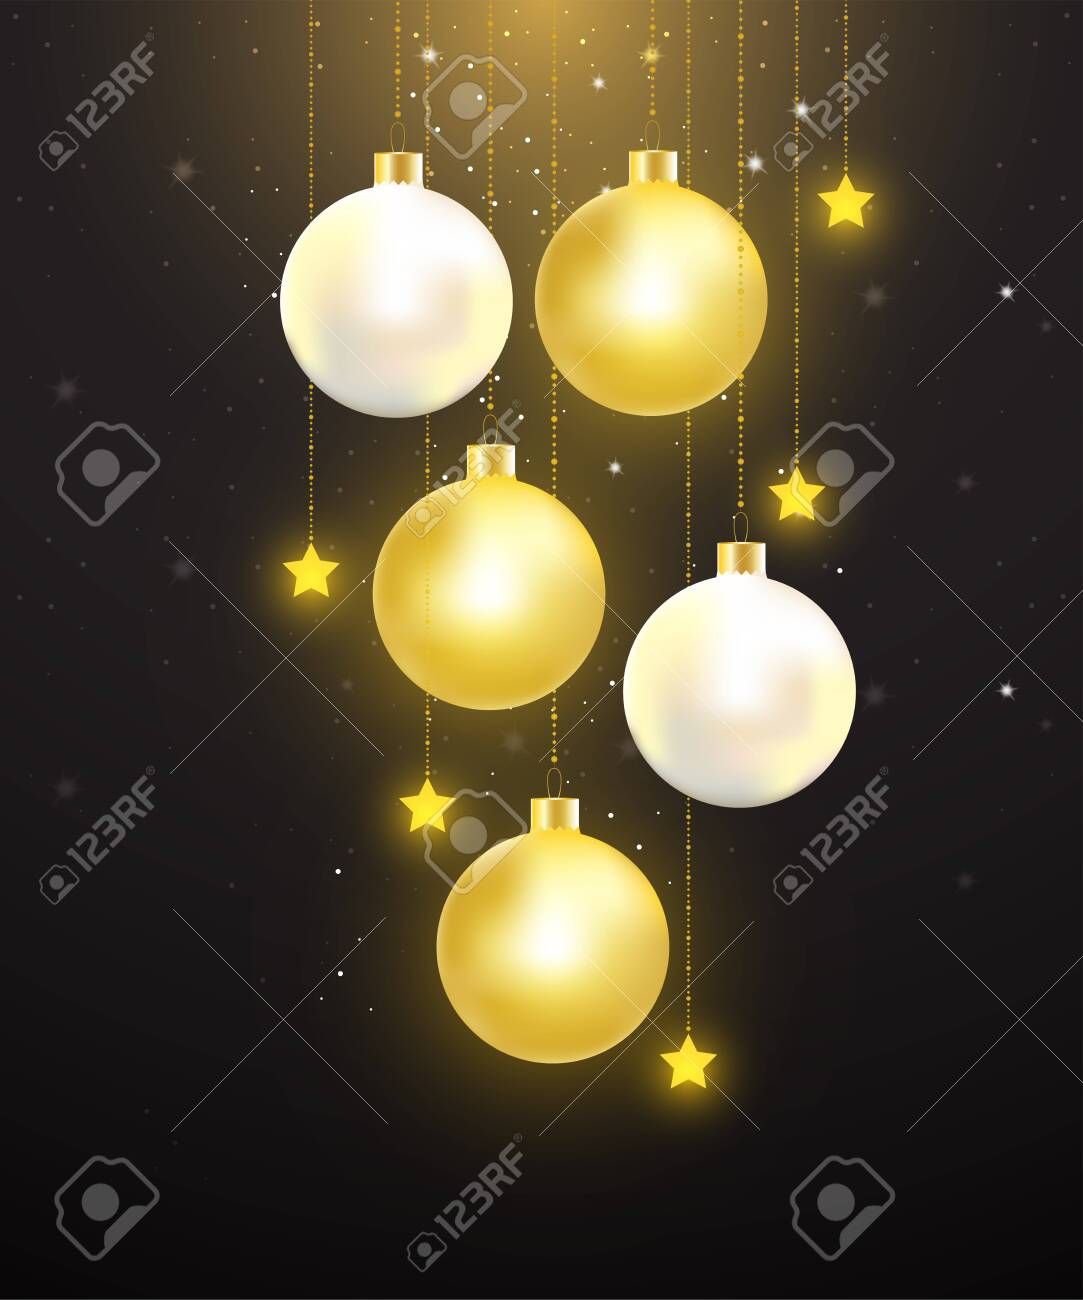 Christmas balls with gold and pearl color hanging on starry night background. Vector illustration for Christmas and New year celebration. - 134716952